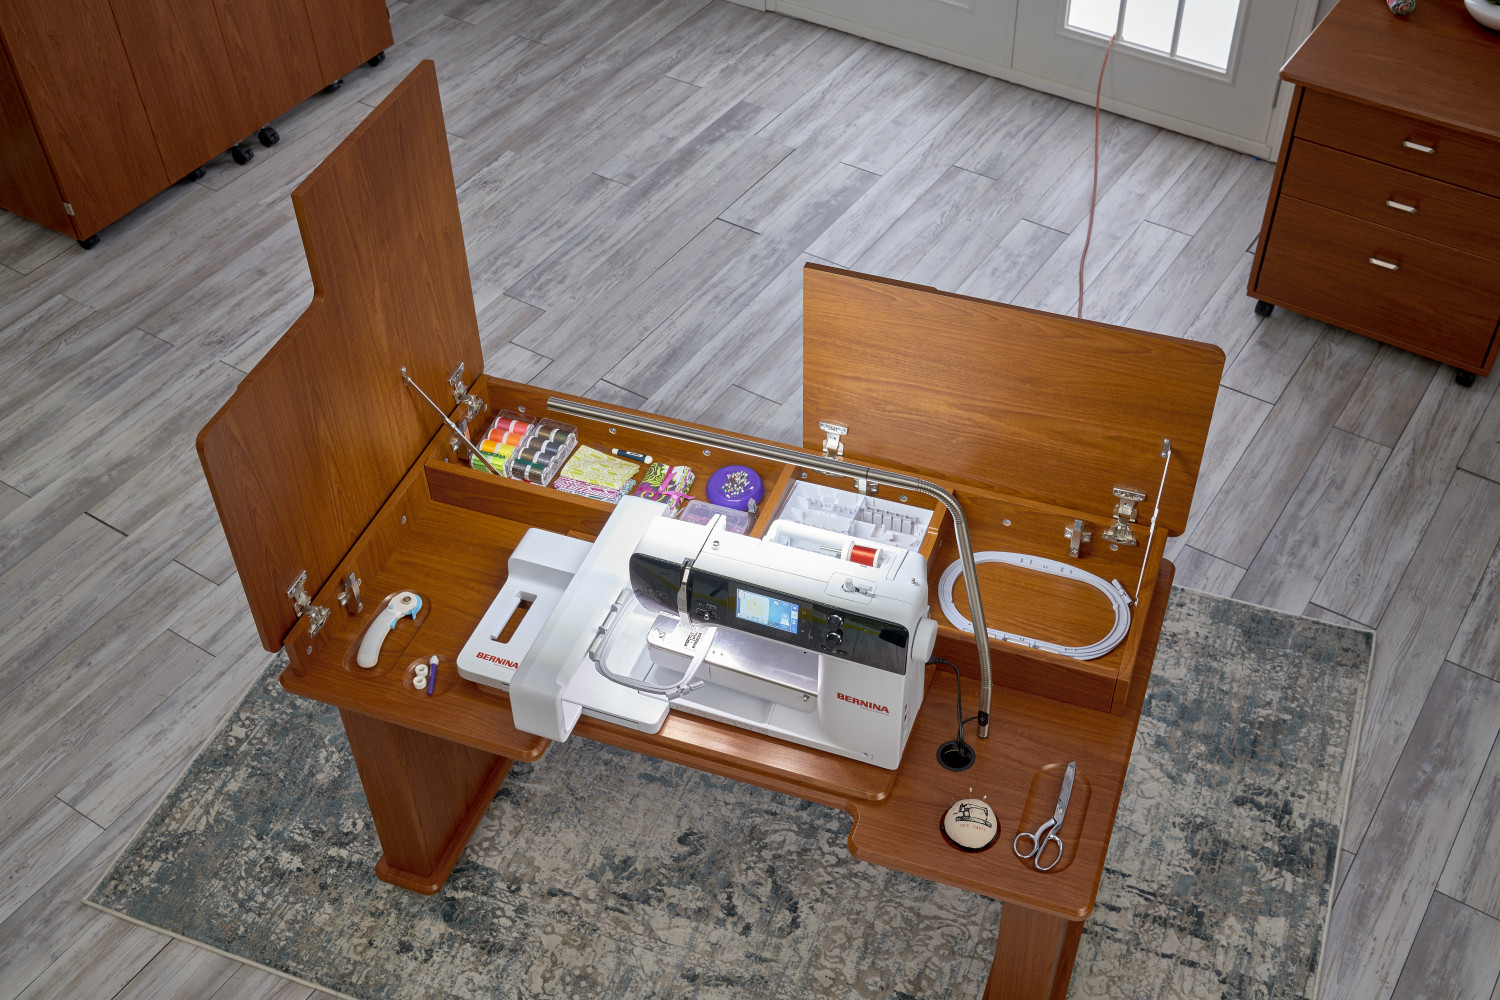 Bernina Sewing Station Open.jpg